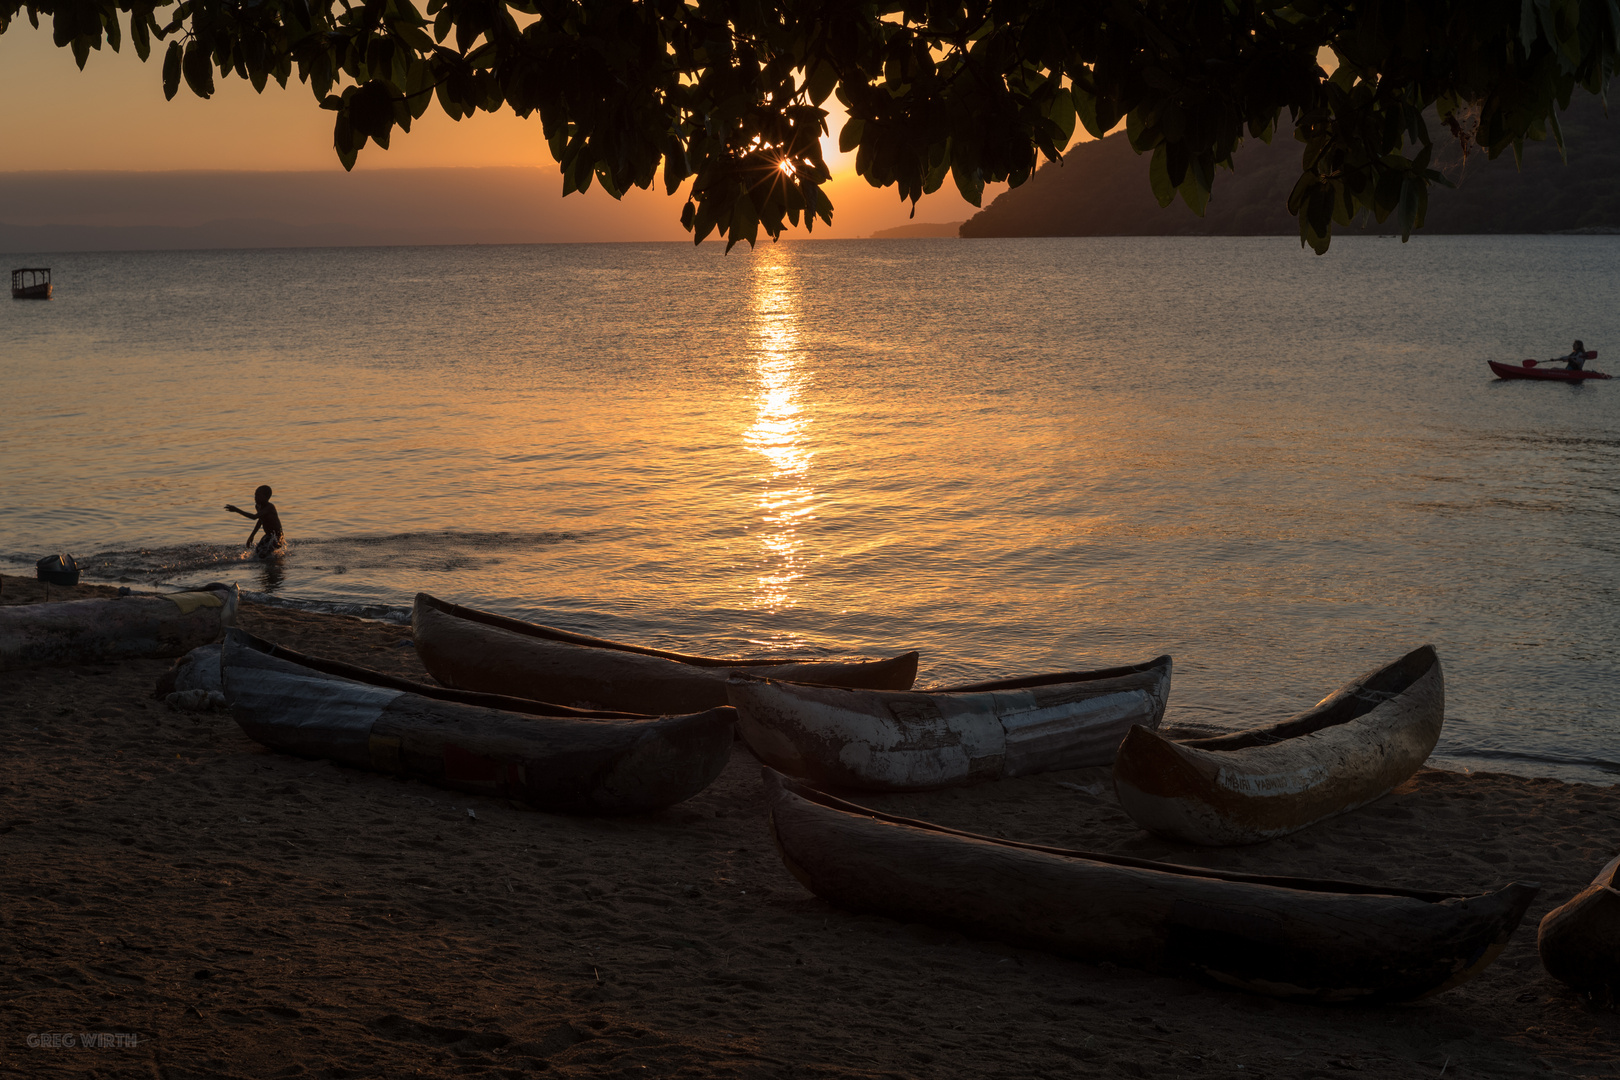 Canoes in the sunset again, I know...